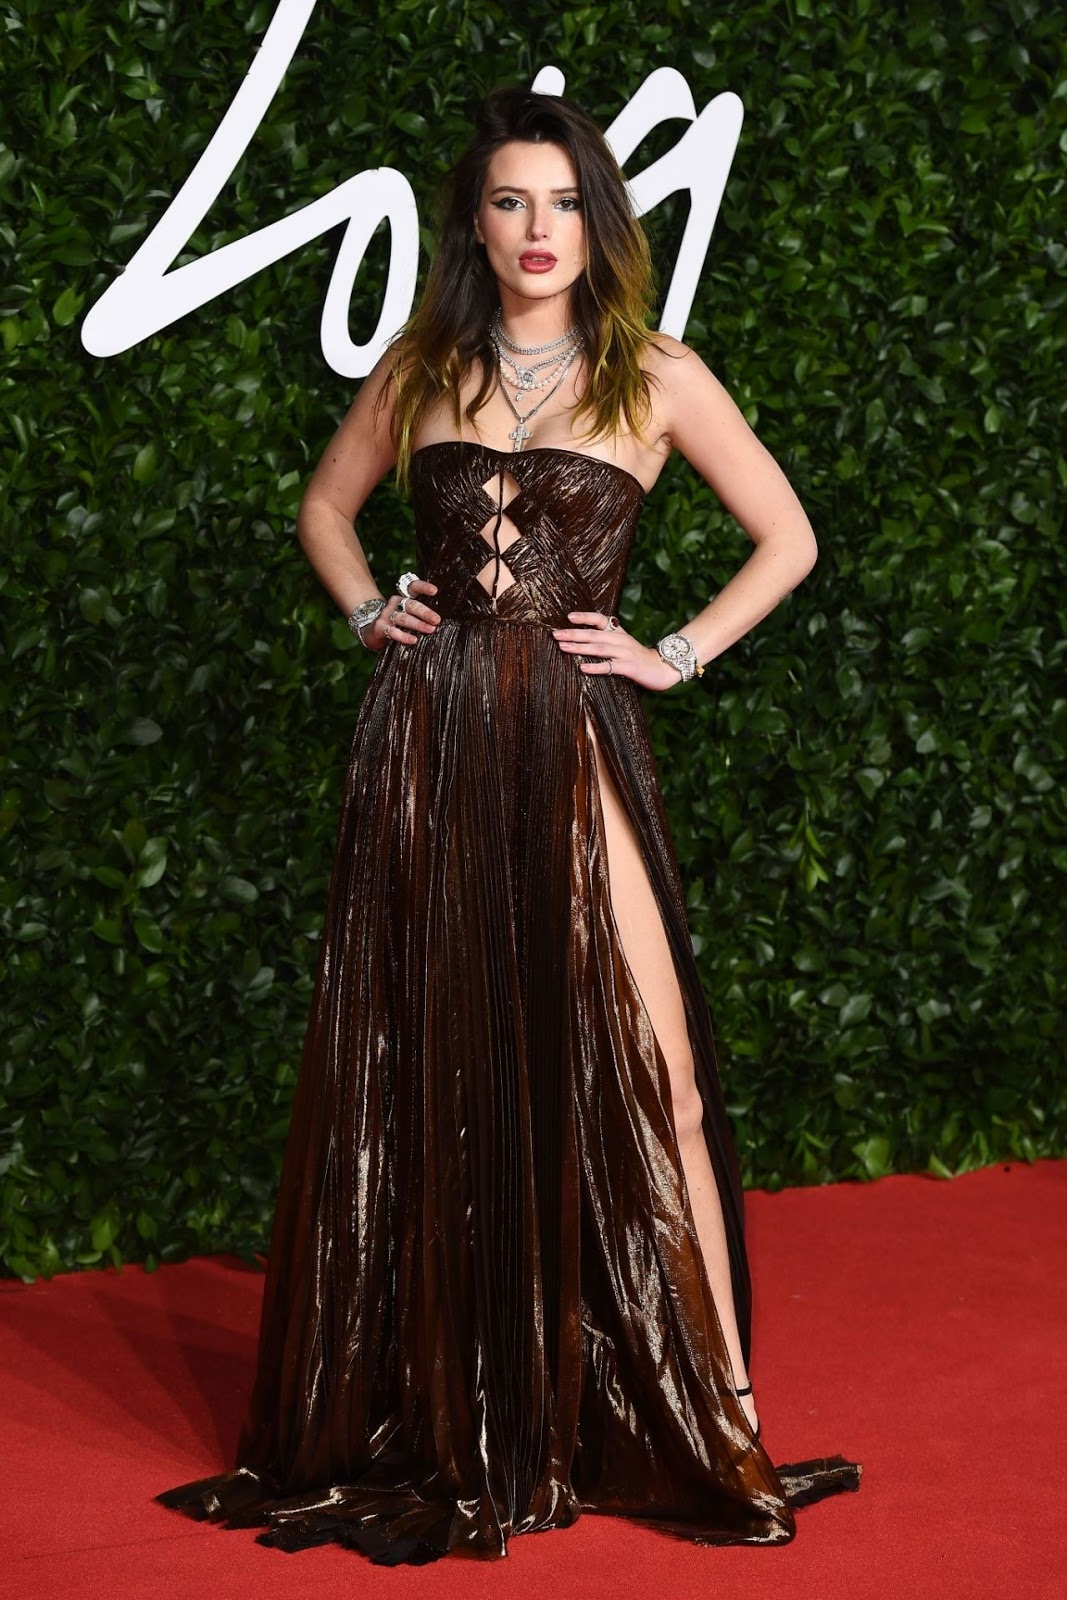 Bella Thorne – Fashion Awards 2019 Red Carpet in London